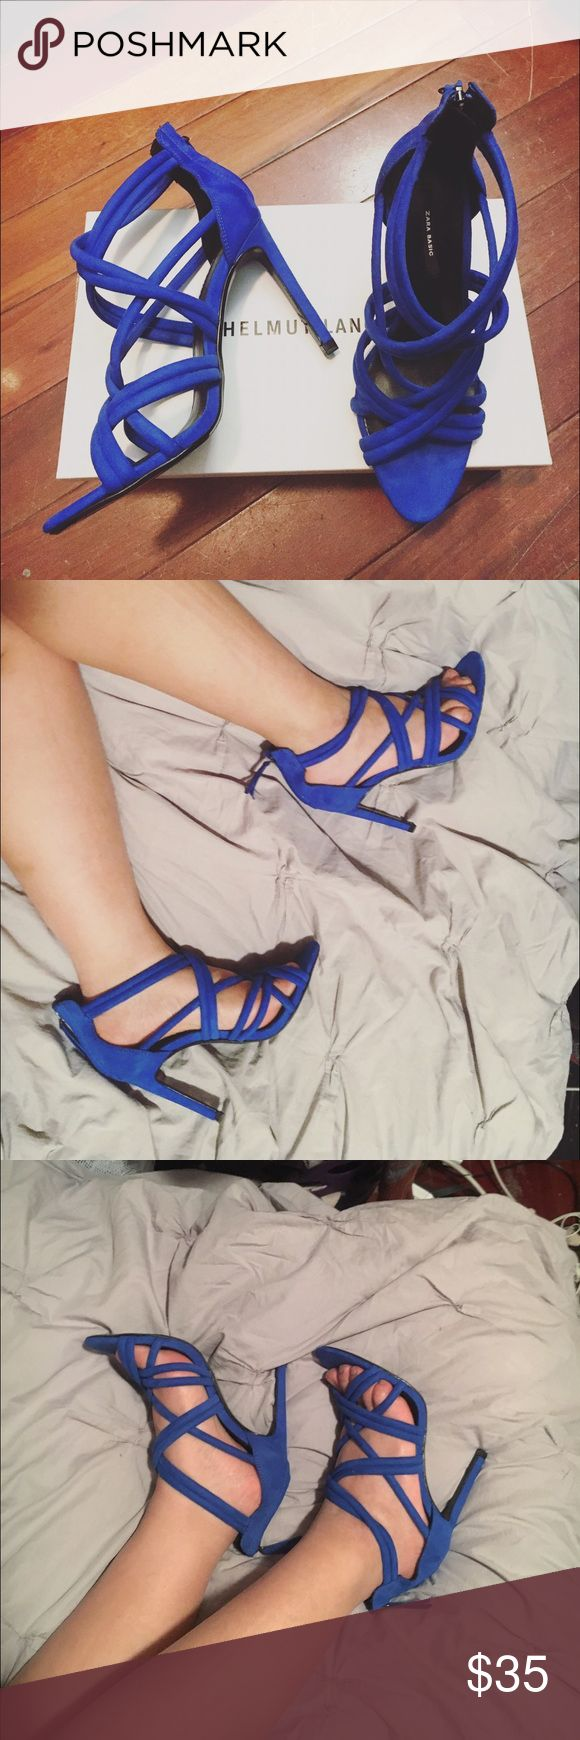 Zara blue strappy heels Size 37, only tried on. Those heels add a pop of color to any outfit, from casual to dressy :) Zara Shoes Heels